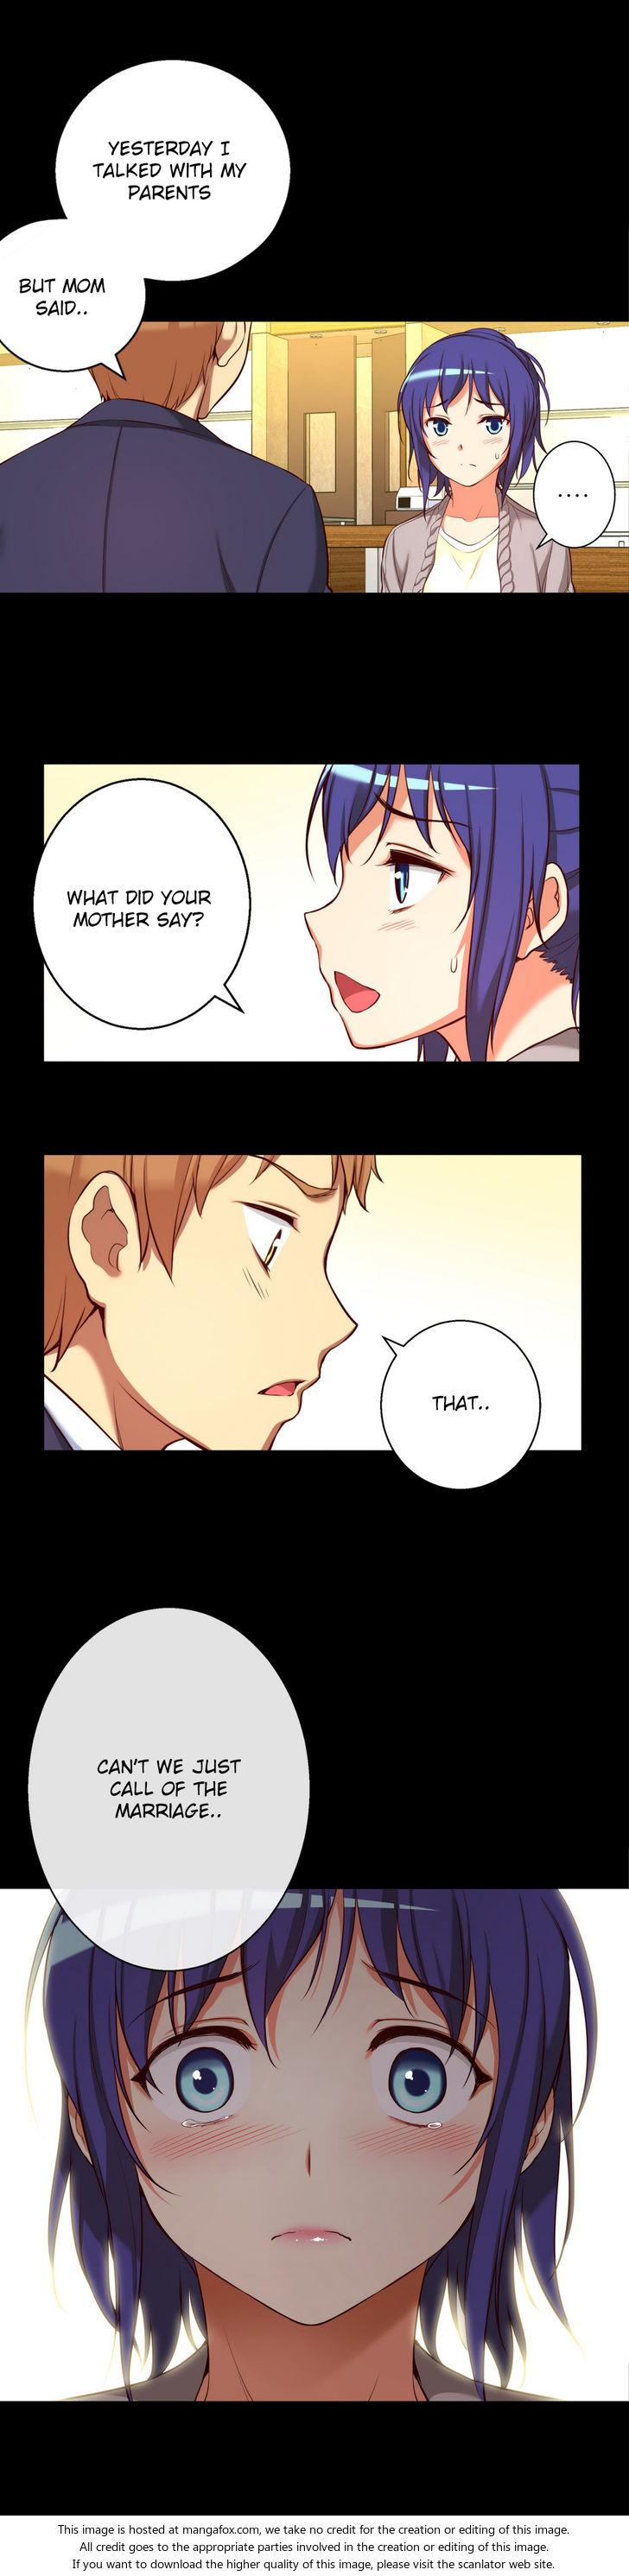 [Donggul Gom] She is Young (English) Part 1/2 206